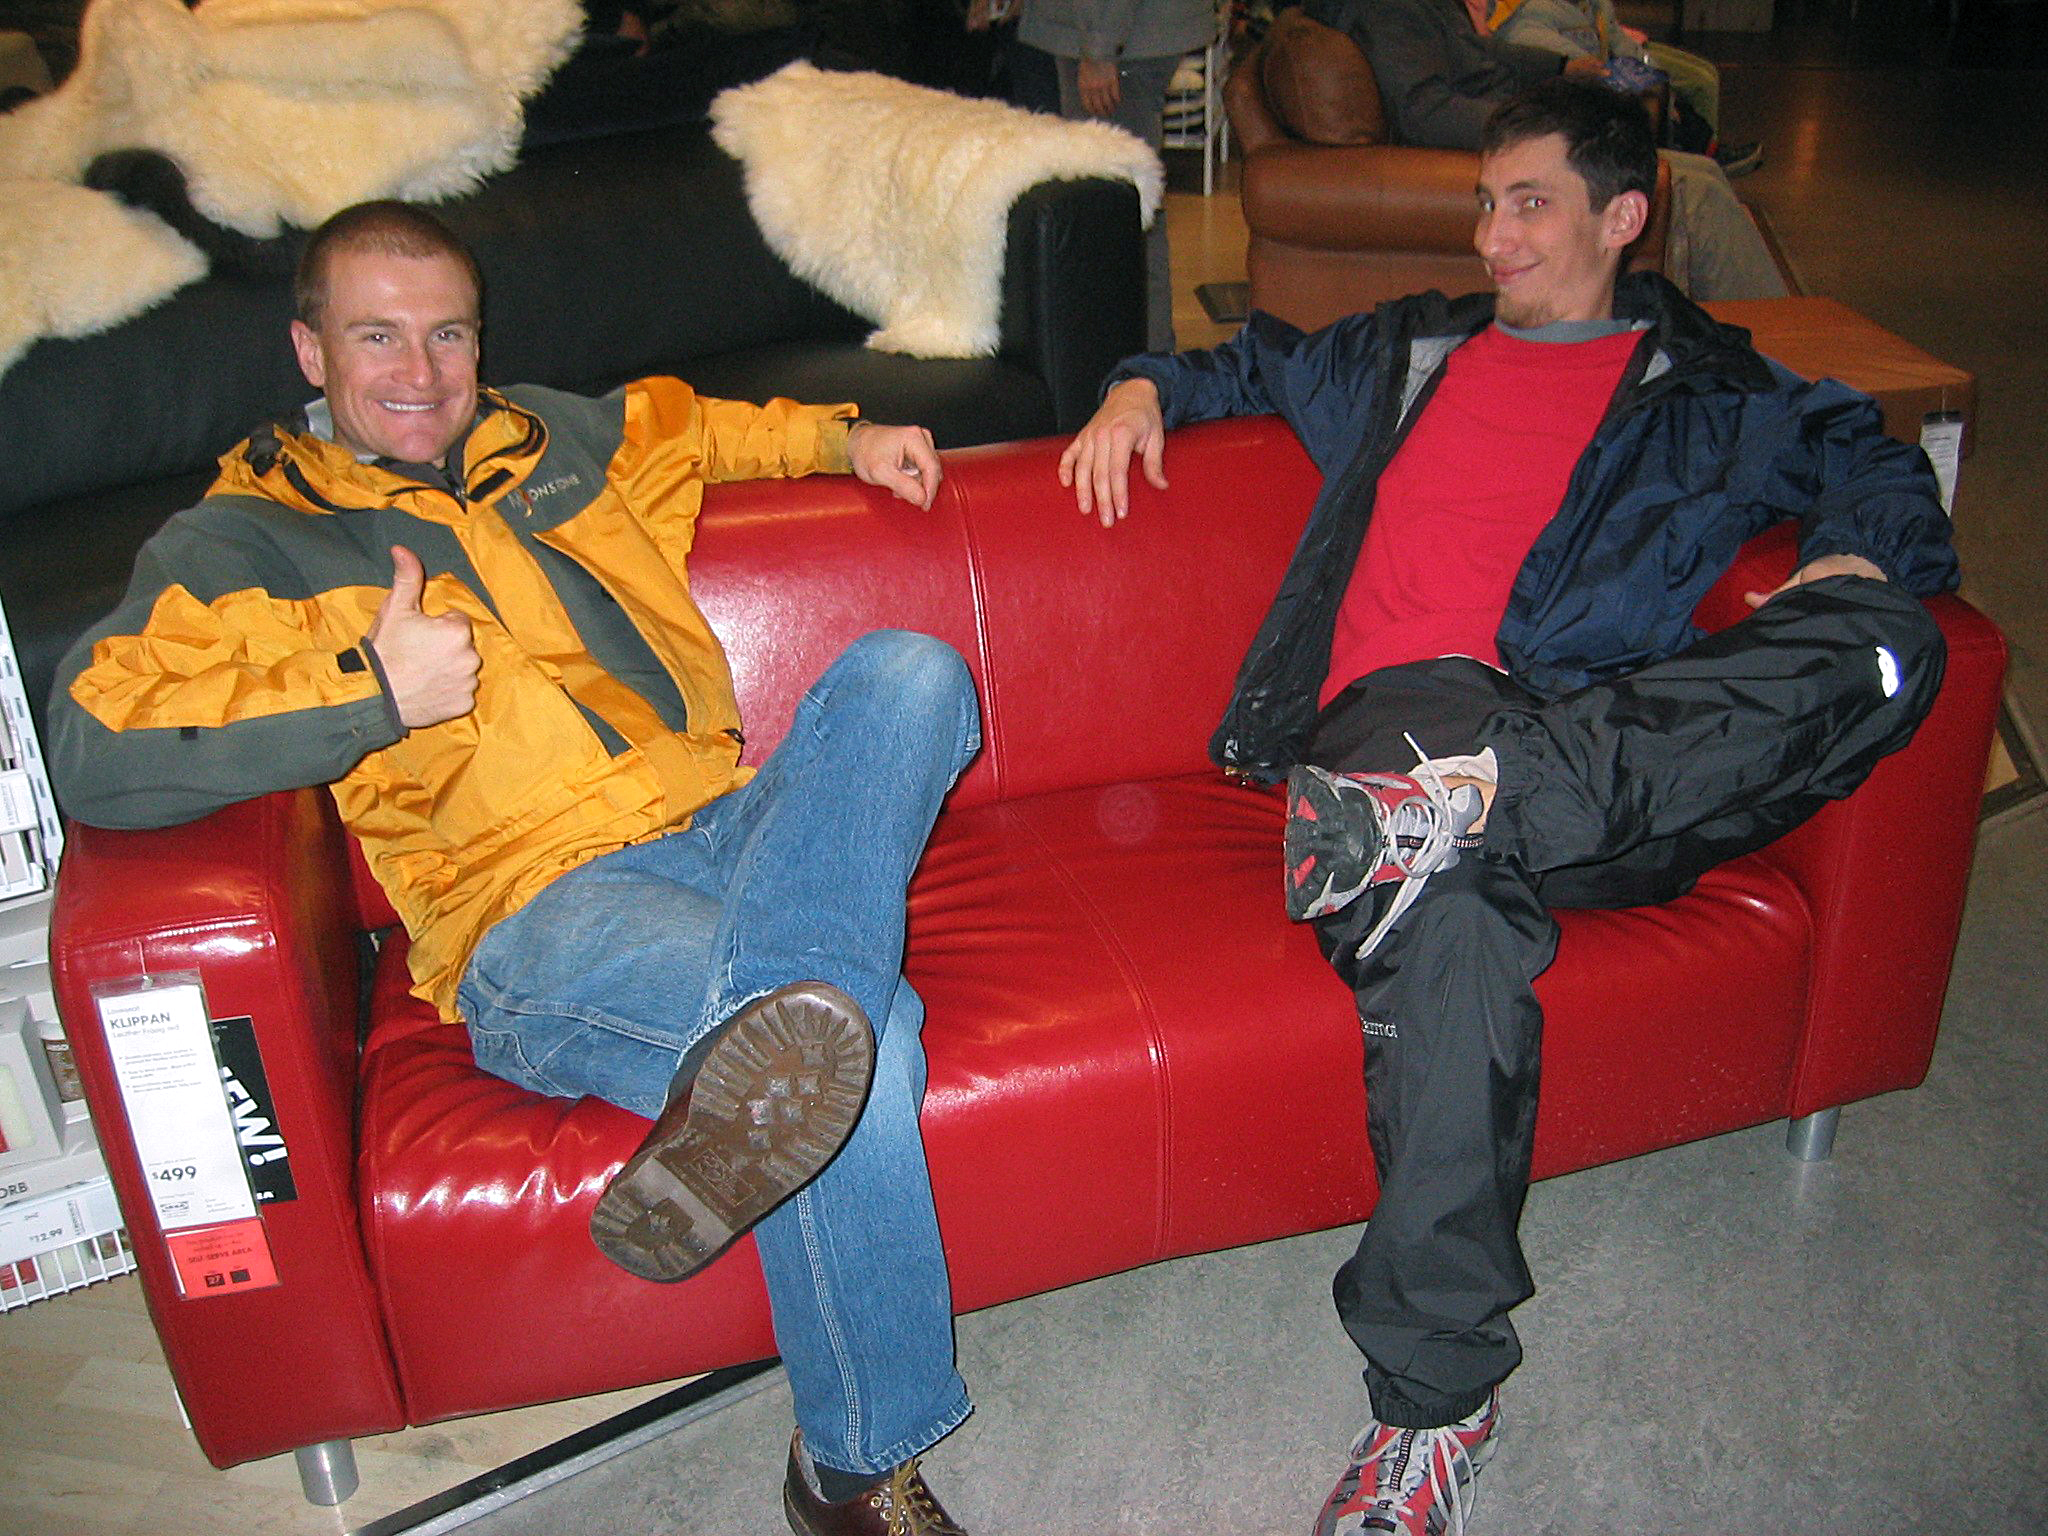 ikea couch photo.jpg